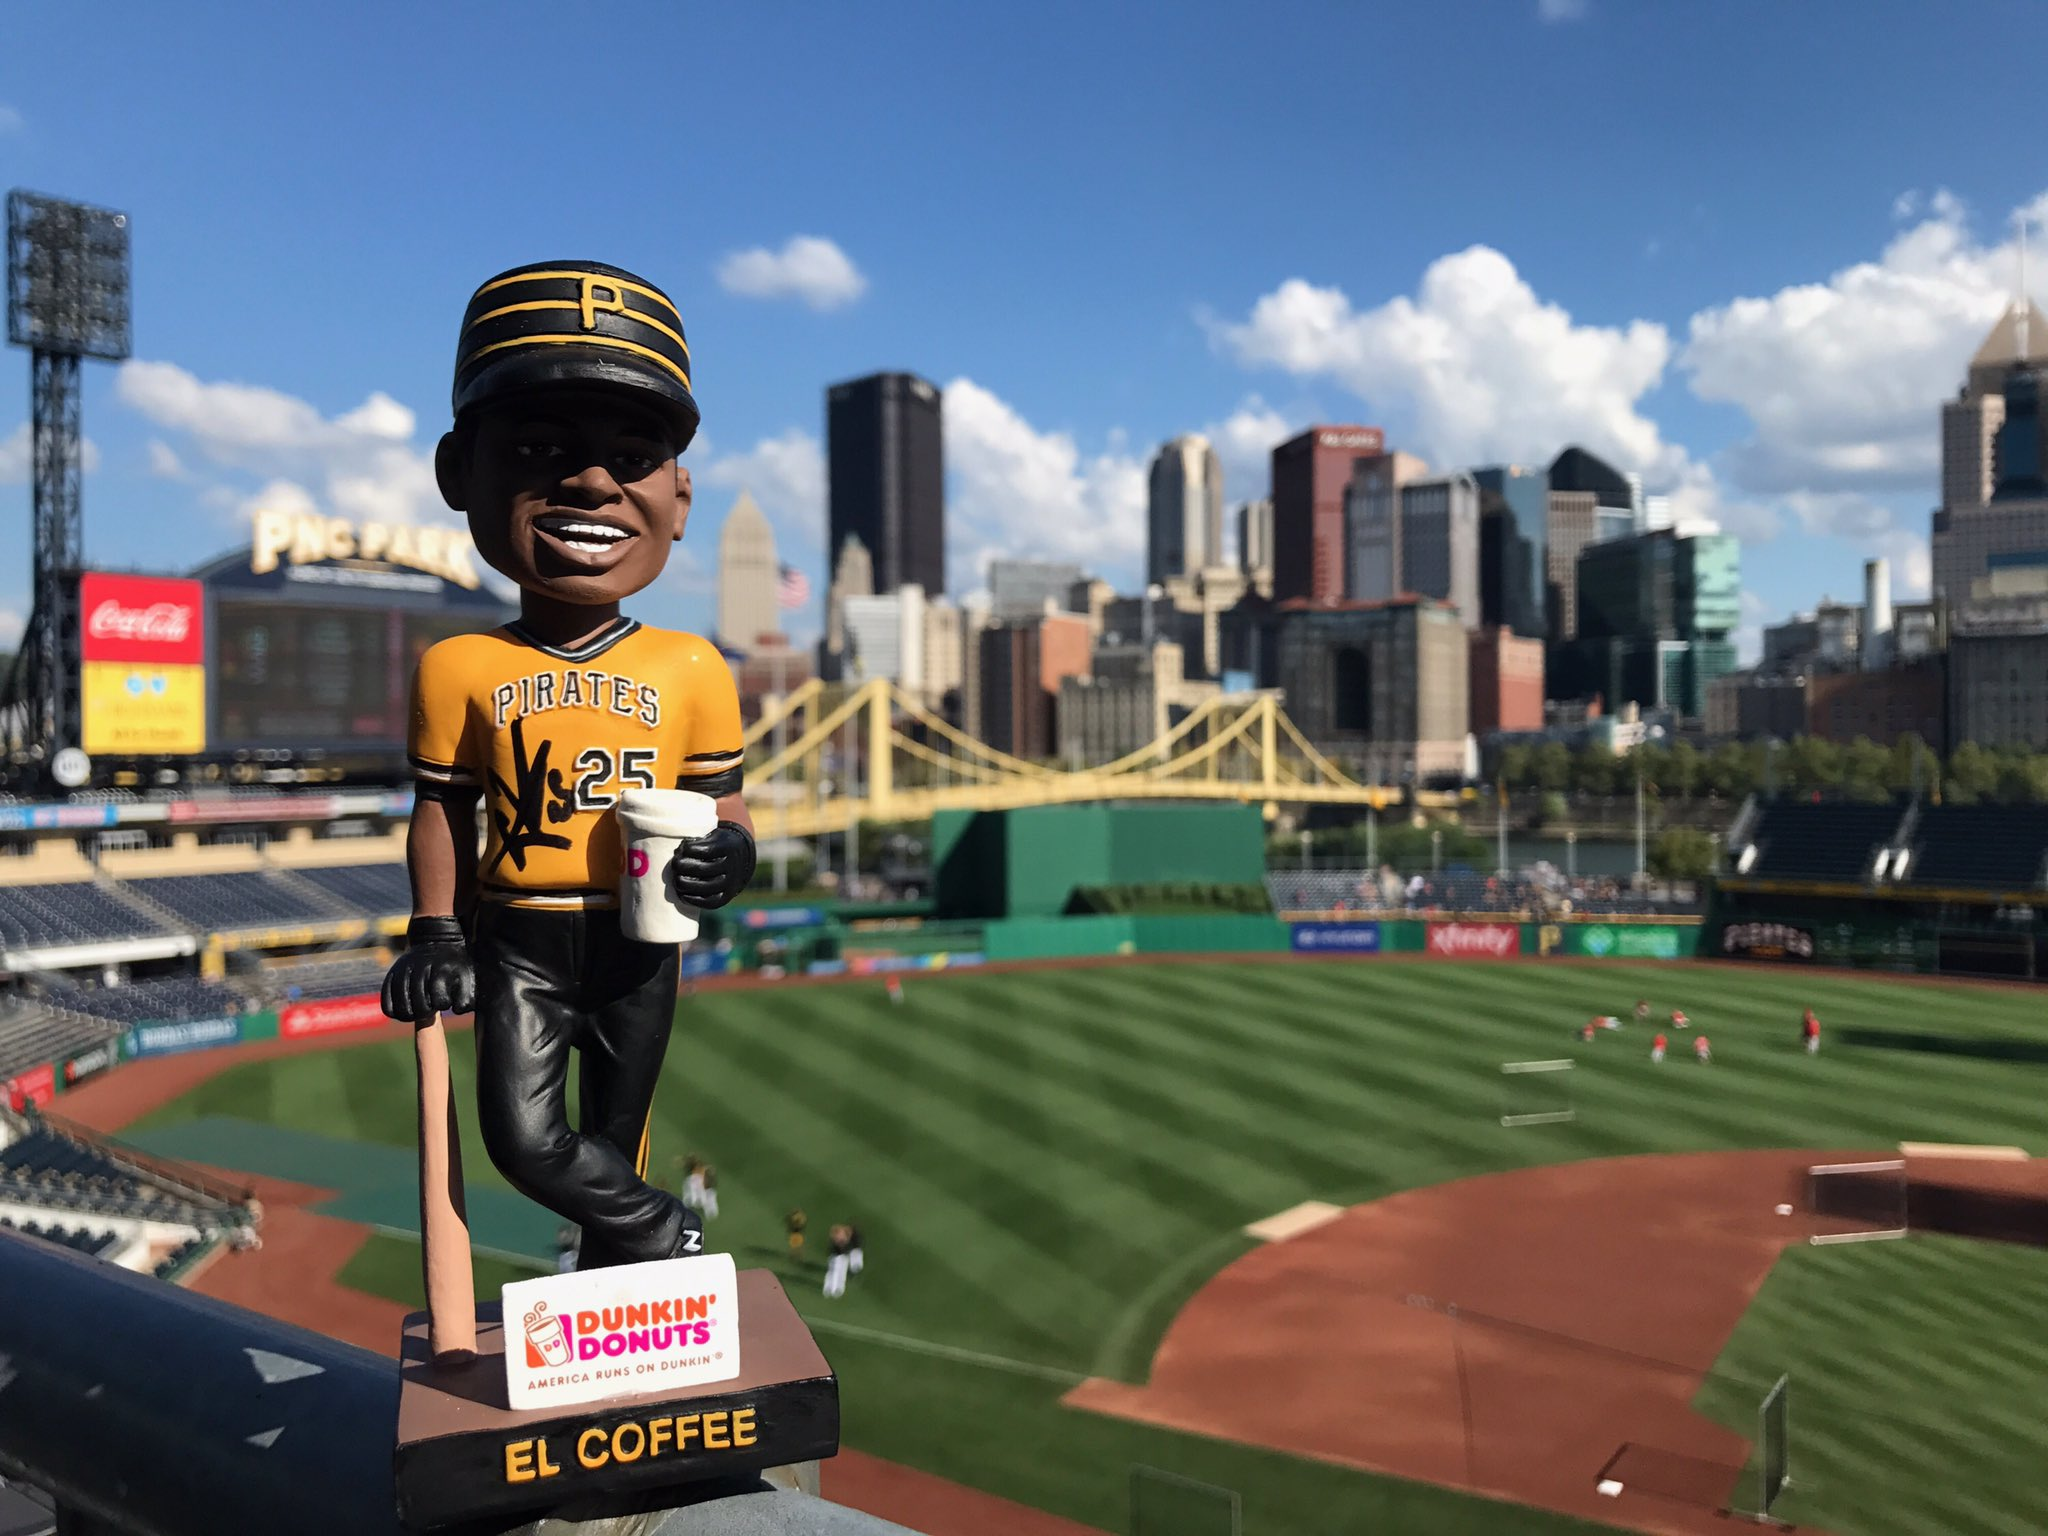 RETWEET THIS for a chance to win a SIGNED Gregory Polanco bobblehead! ��☕️ https://t.co/hgAK9WS3z6